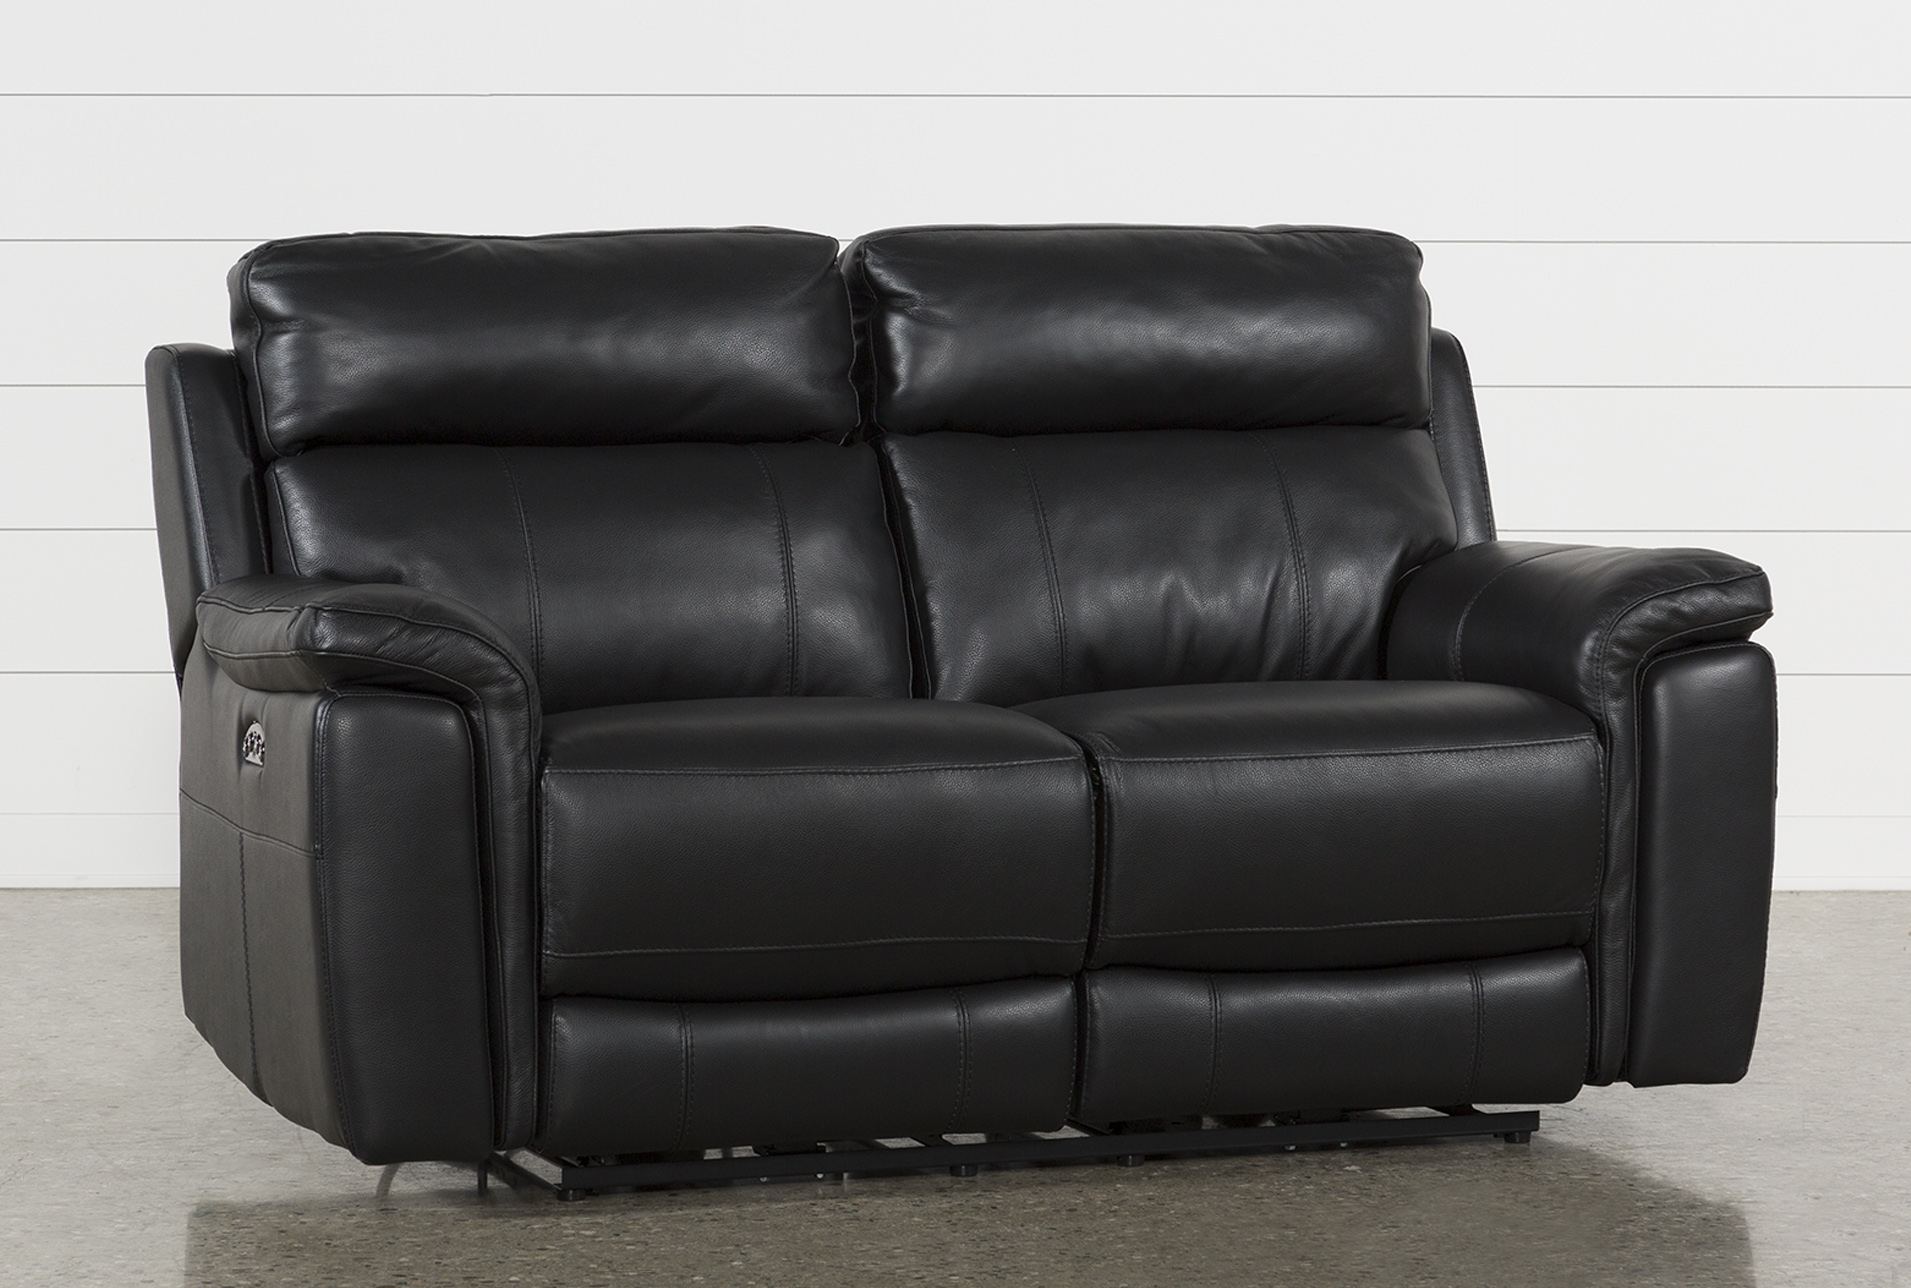 Dino Black Leather Power Reclining Loveseat W/Power Headrest & Usb  (Qty: 1) has been successfully added to your Cart.